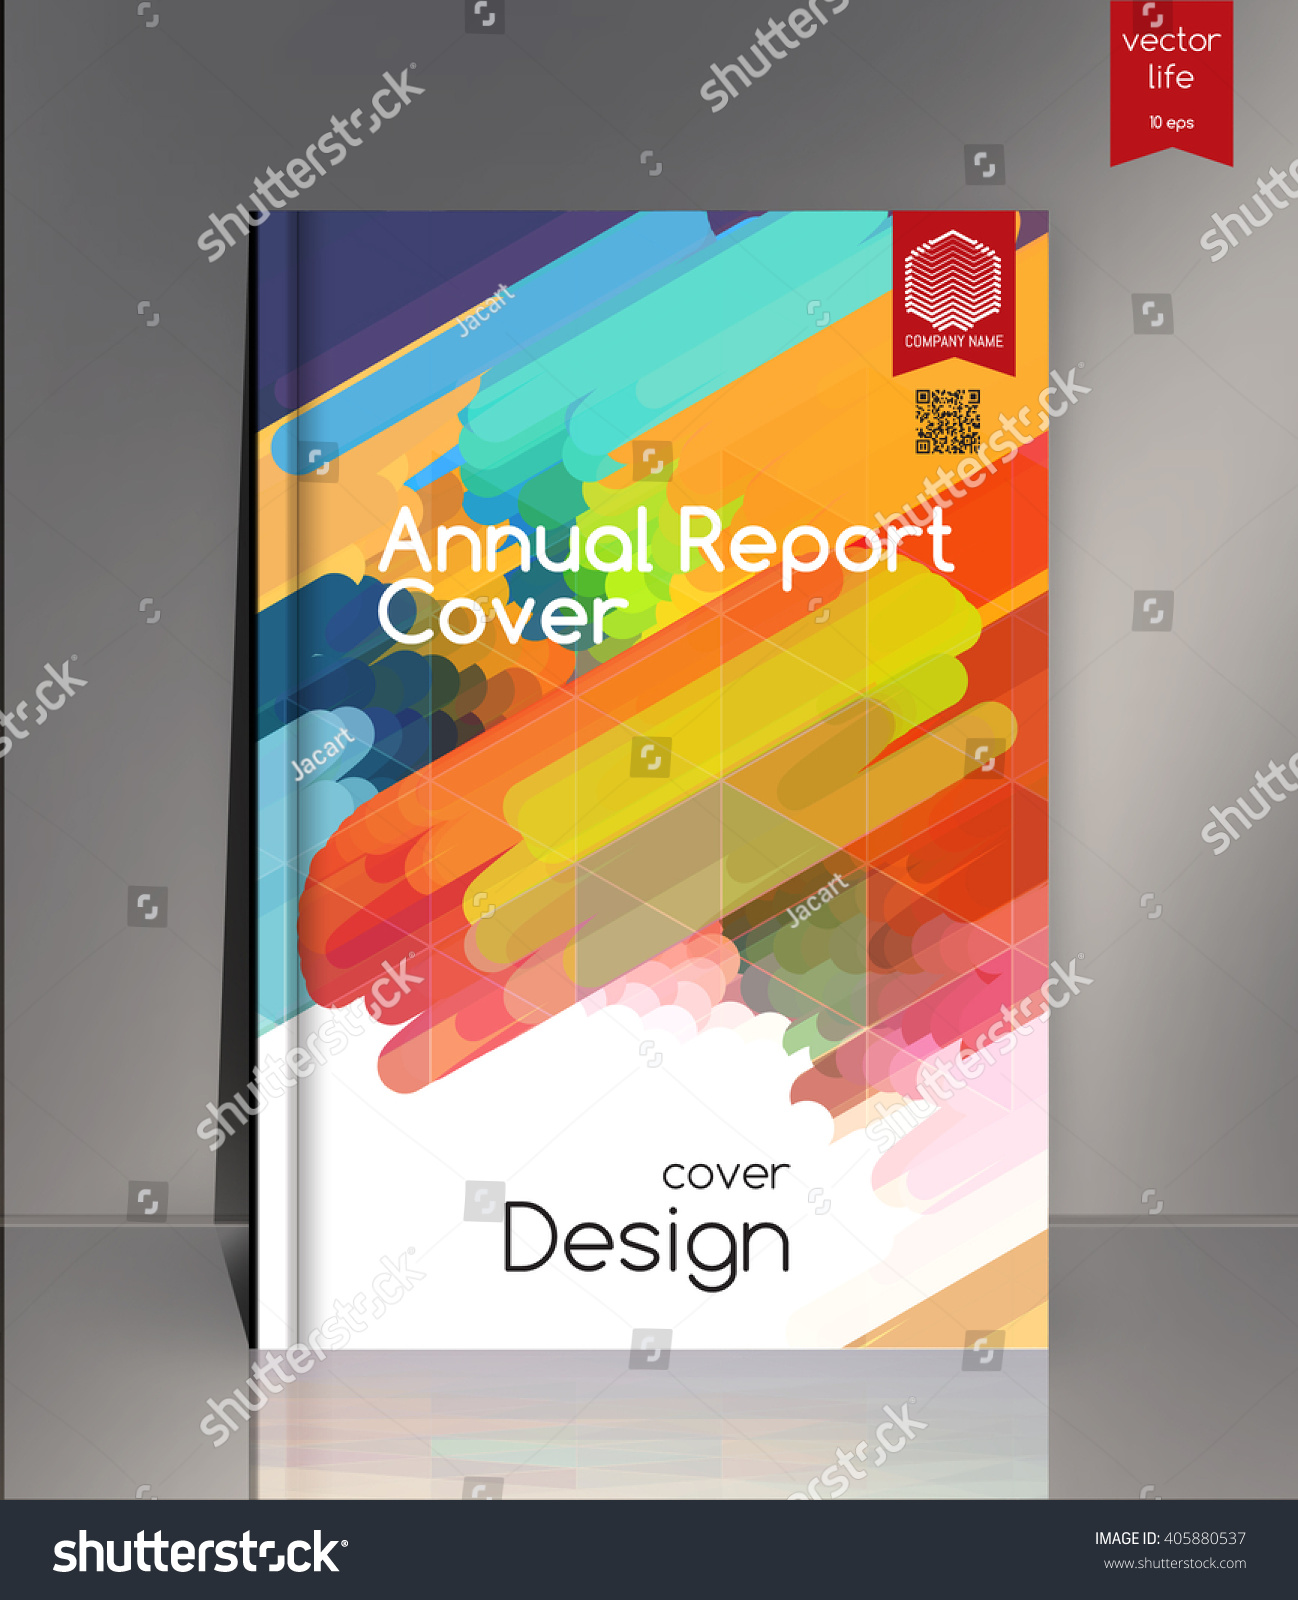 annual report cover cover design stock vector shutterstock annual report cover cover design